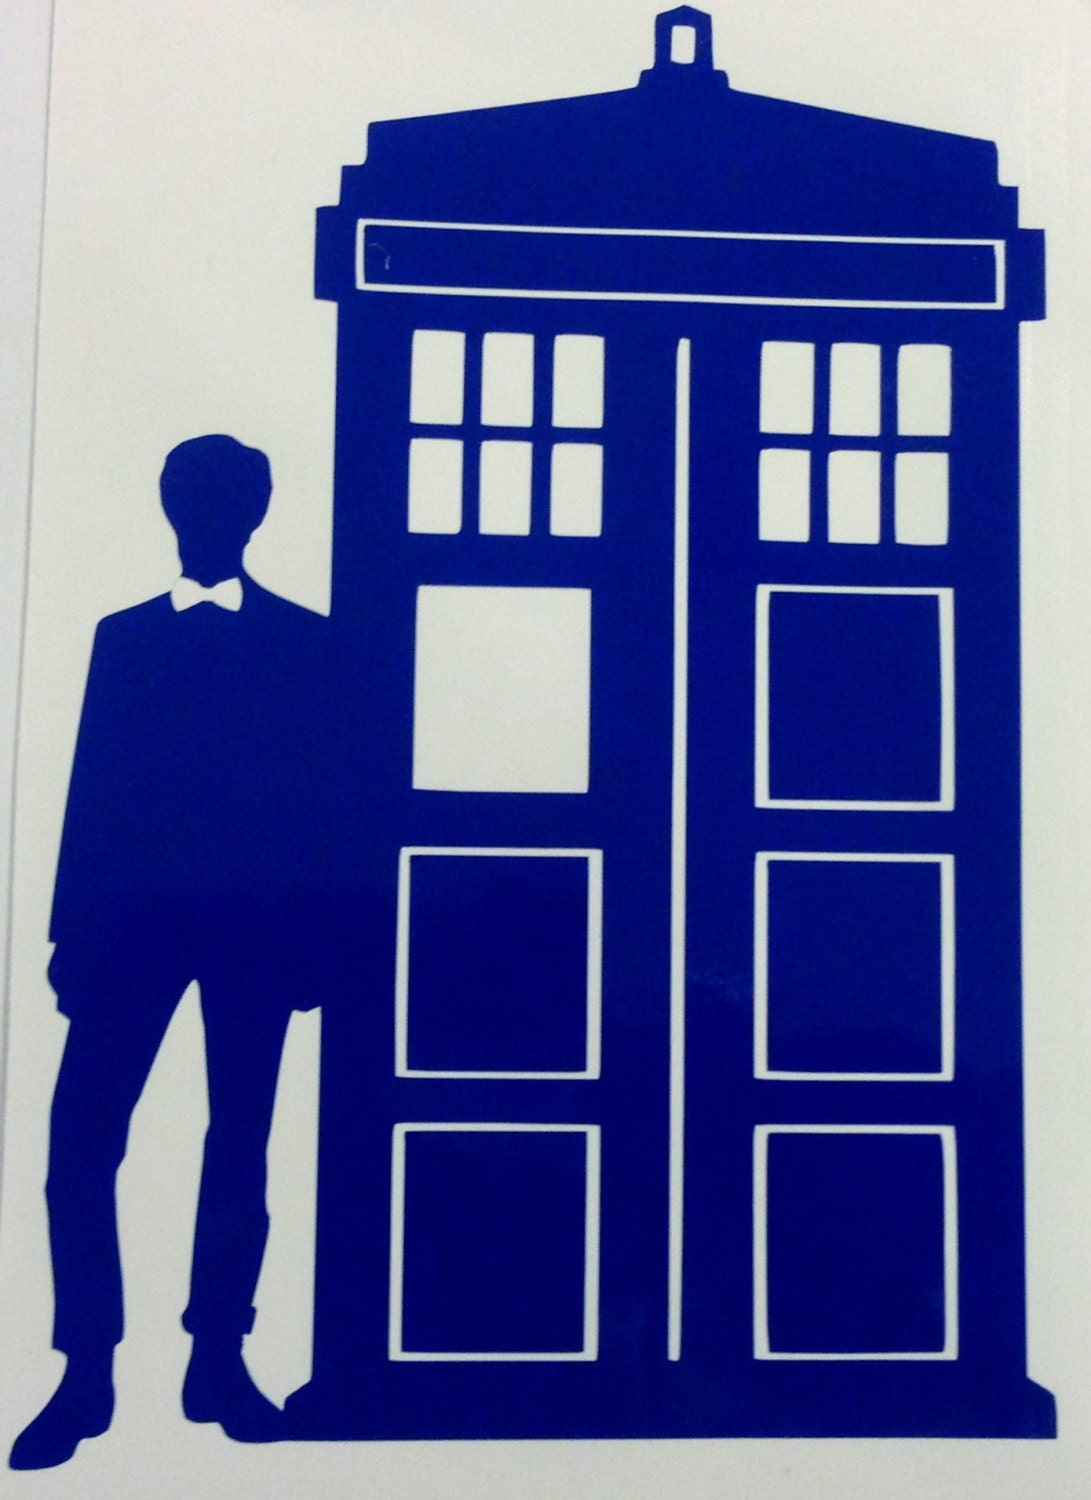 Doctor Who Inspired Eleventh Doctor And Tardis Decal